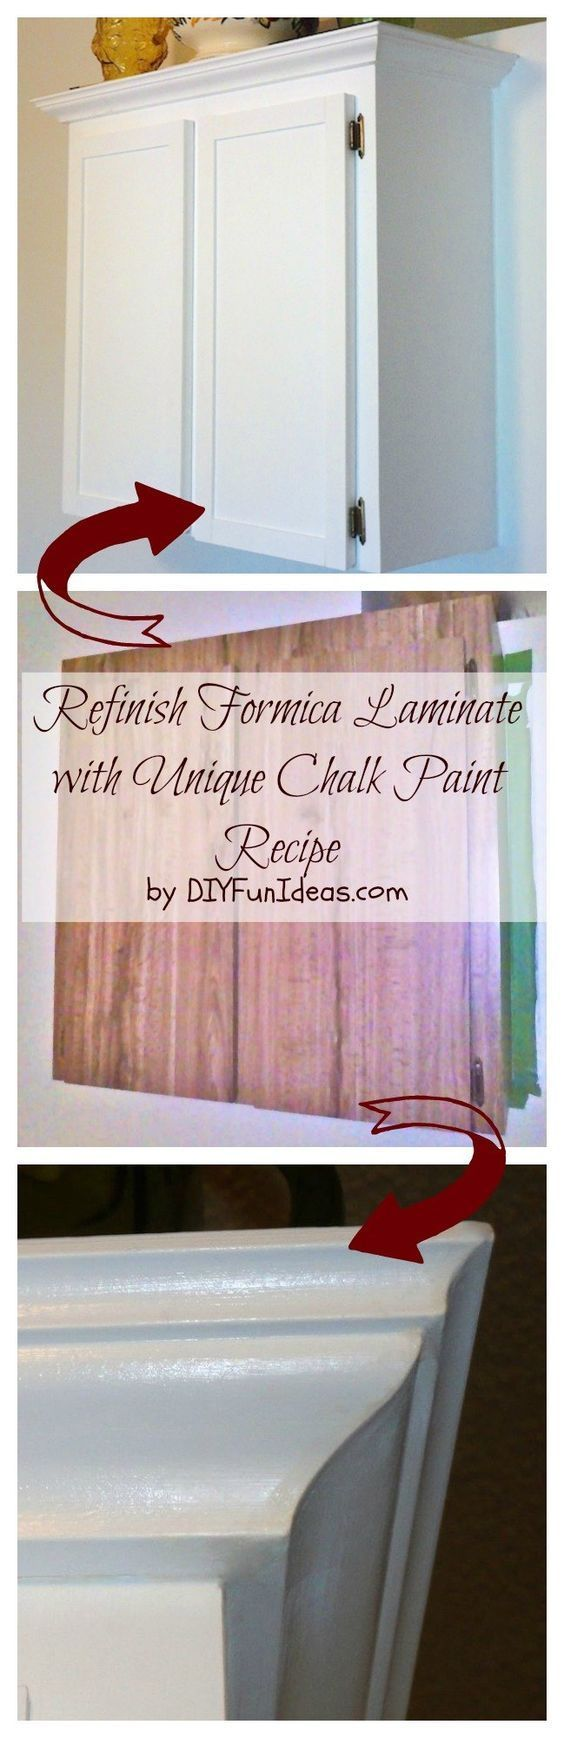 How To Refinish Formica Cabinets + Unique Chalk Paint ...